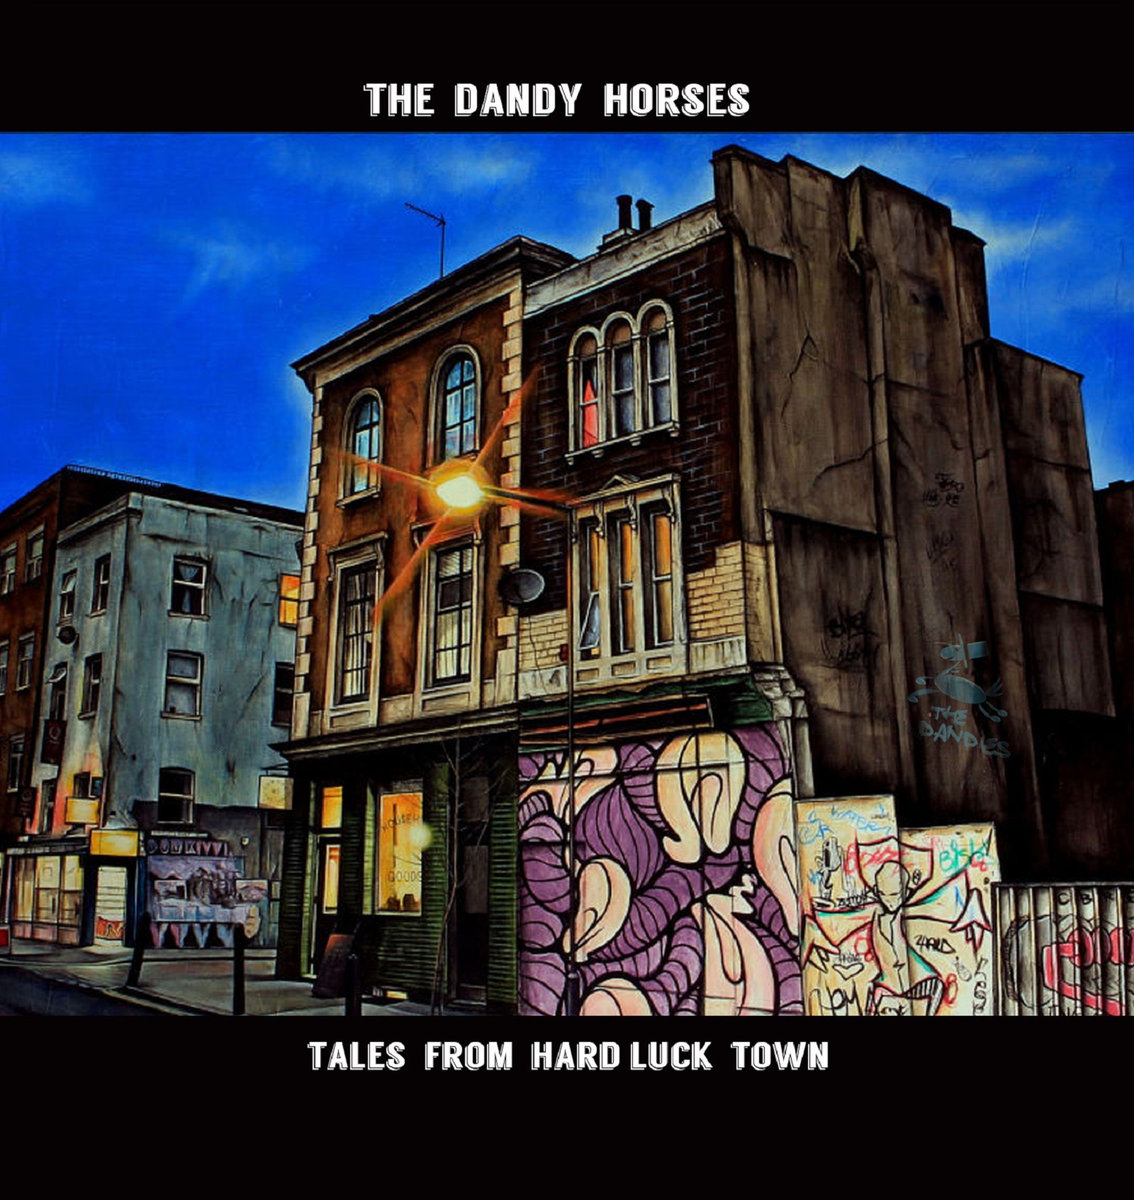 Tales from hard luck town